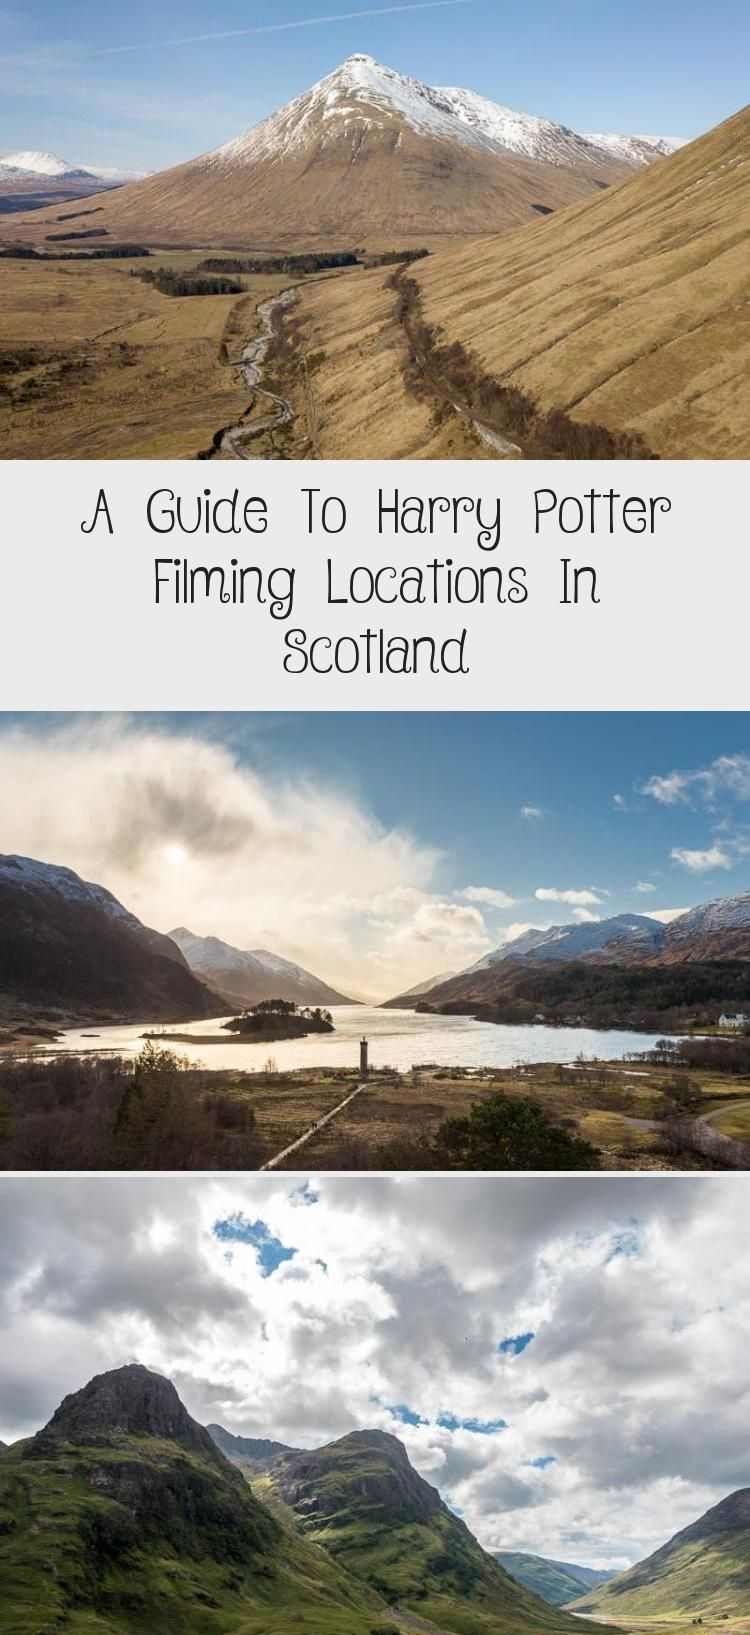 A Guide To Harry Potter Filming Locations In Scotland Travelling Filming Locations Harry Potter Filming Locations Movie Locations